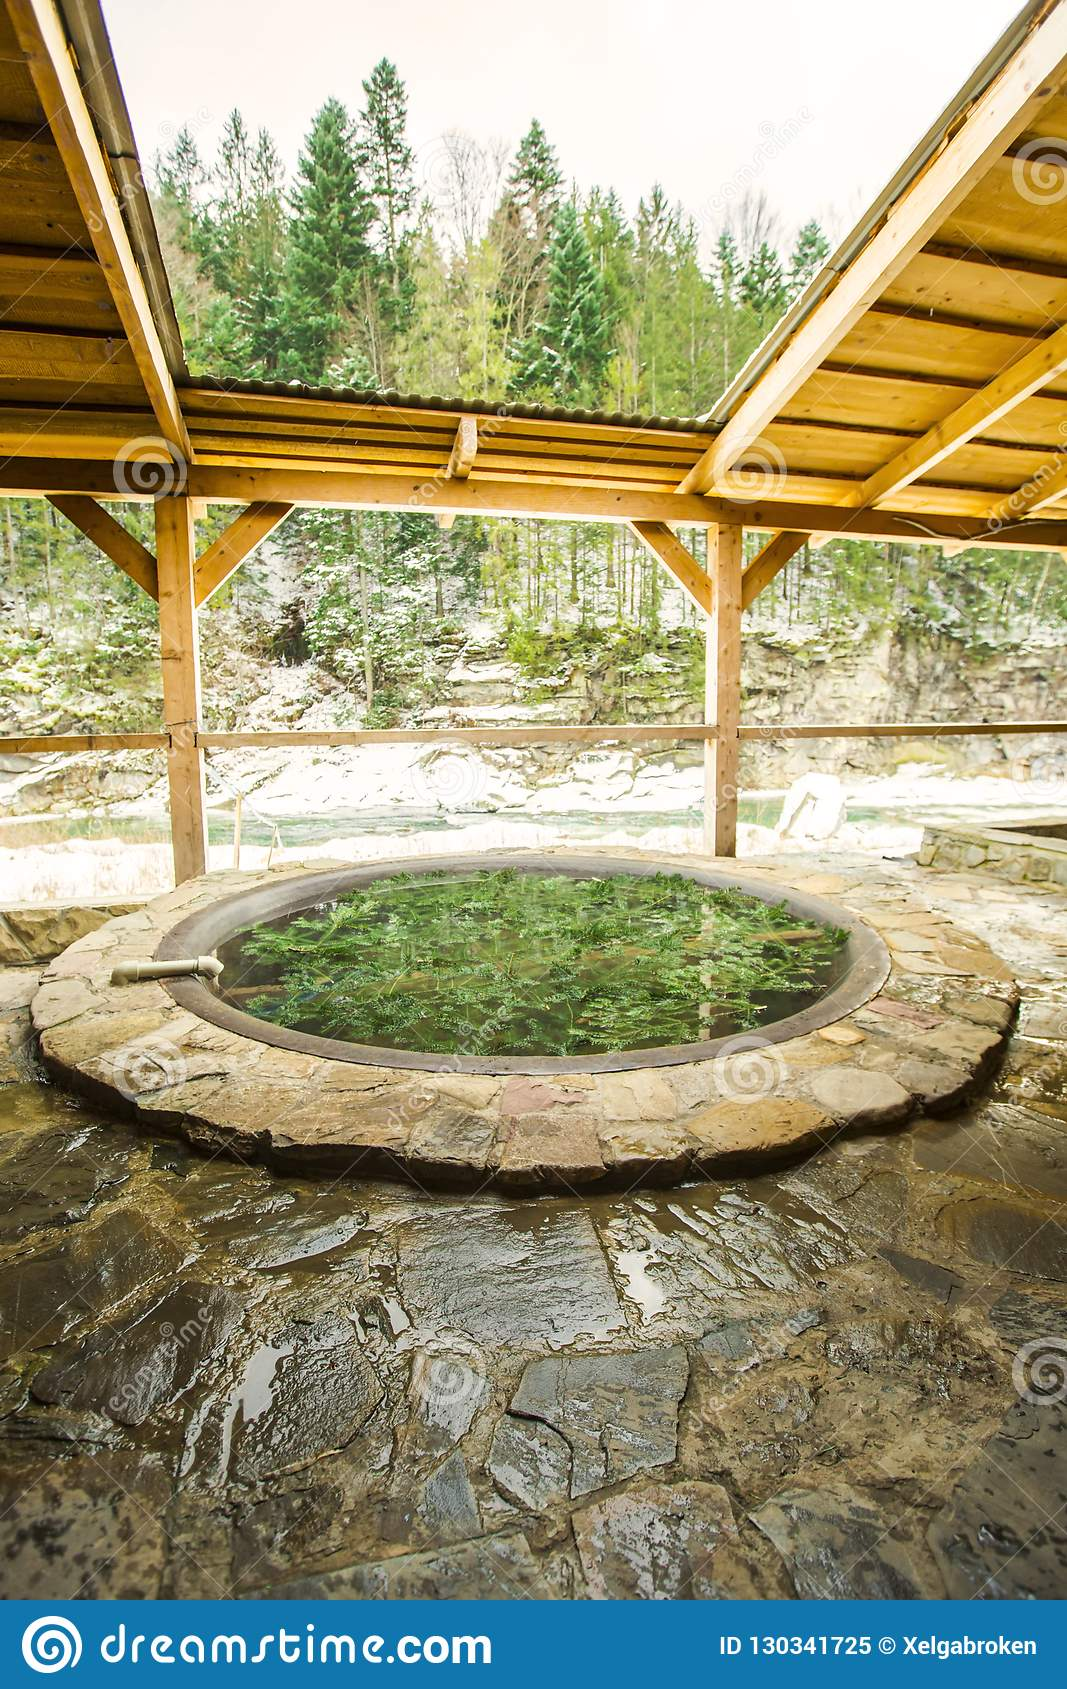 Open air bath outdoors in winter. Iron tub for bathing in hot water